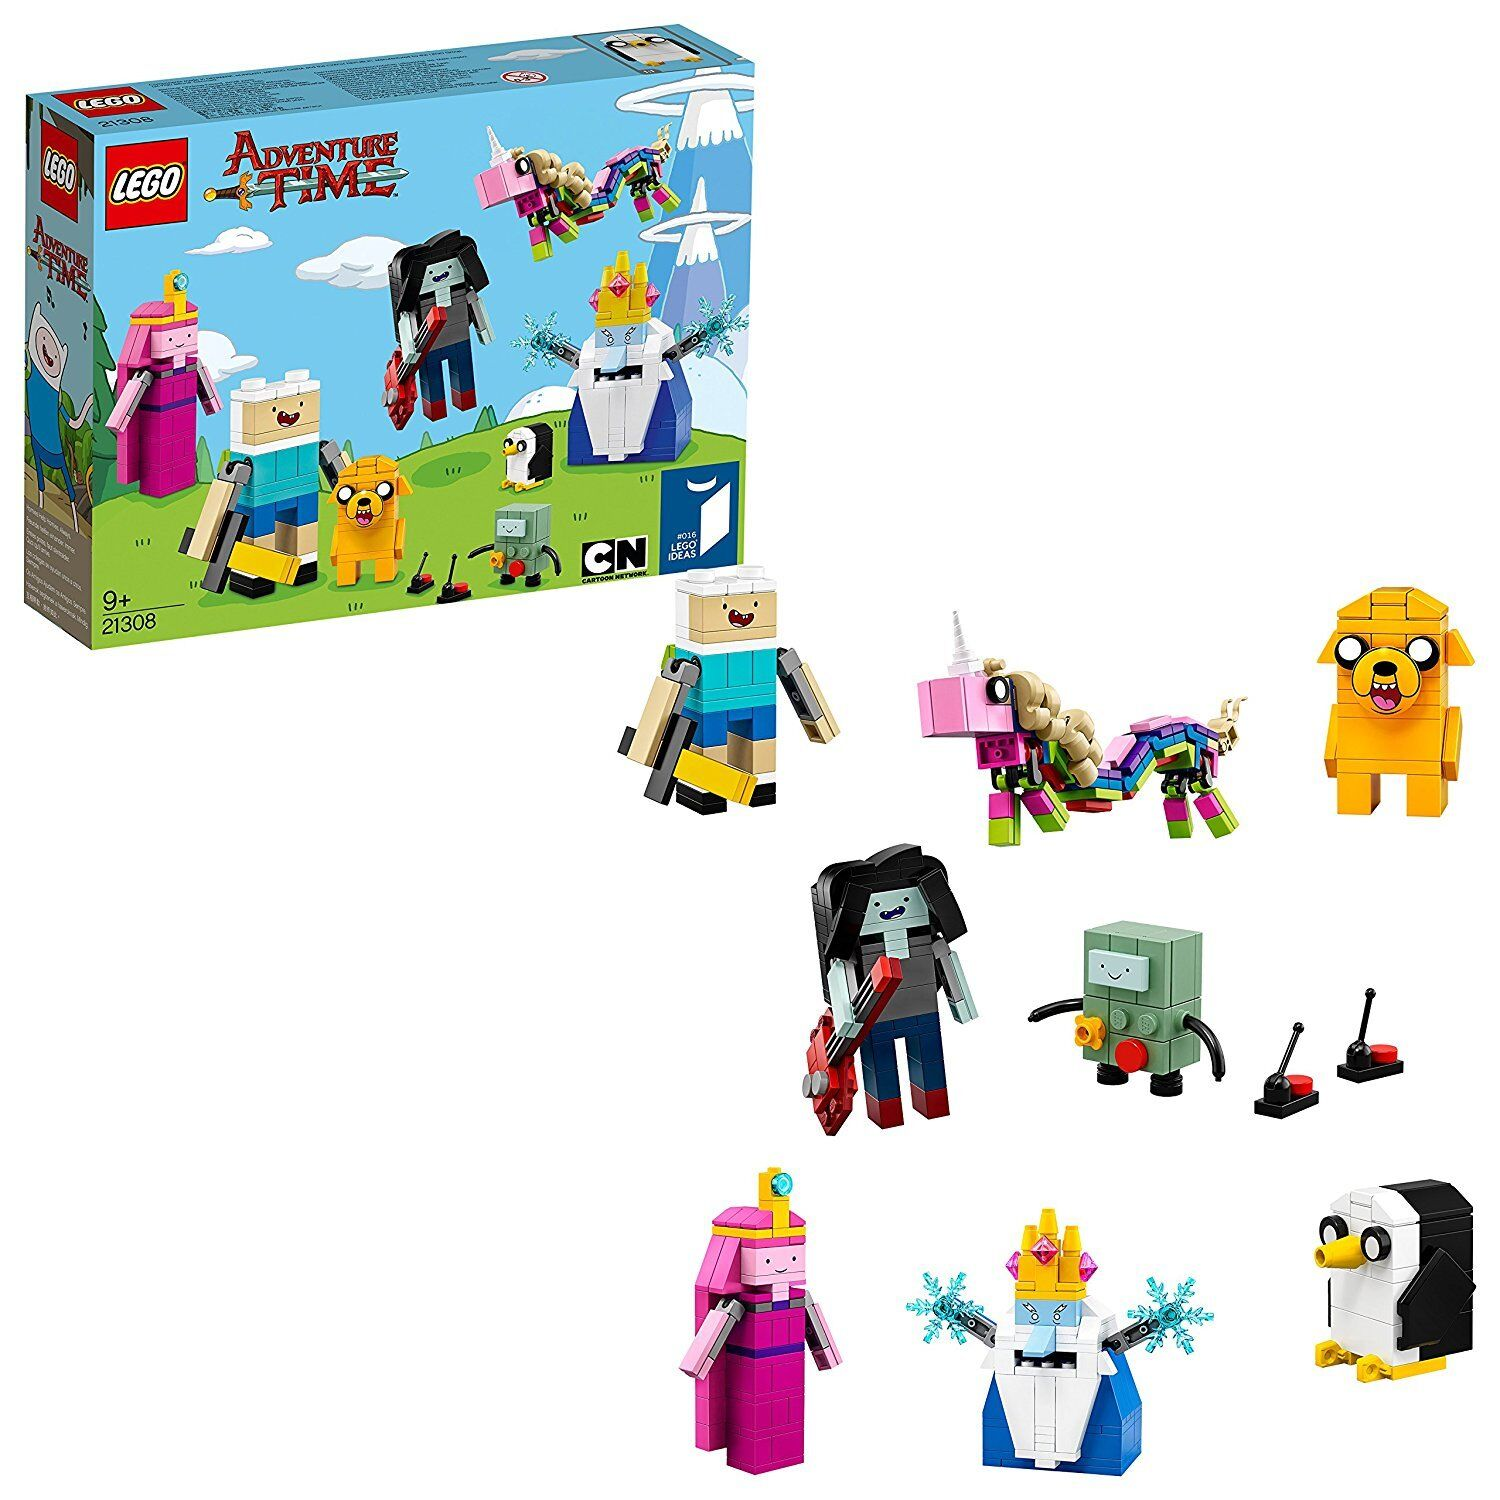 LEGO 21308 Adventure Time Toy Creative Role-Playing Minifugures Set with Fi...